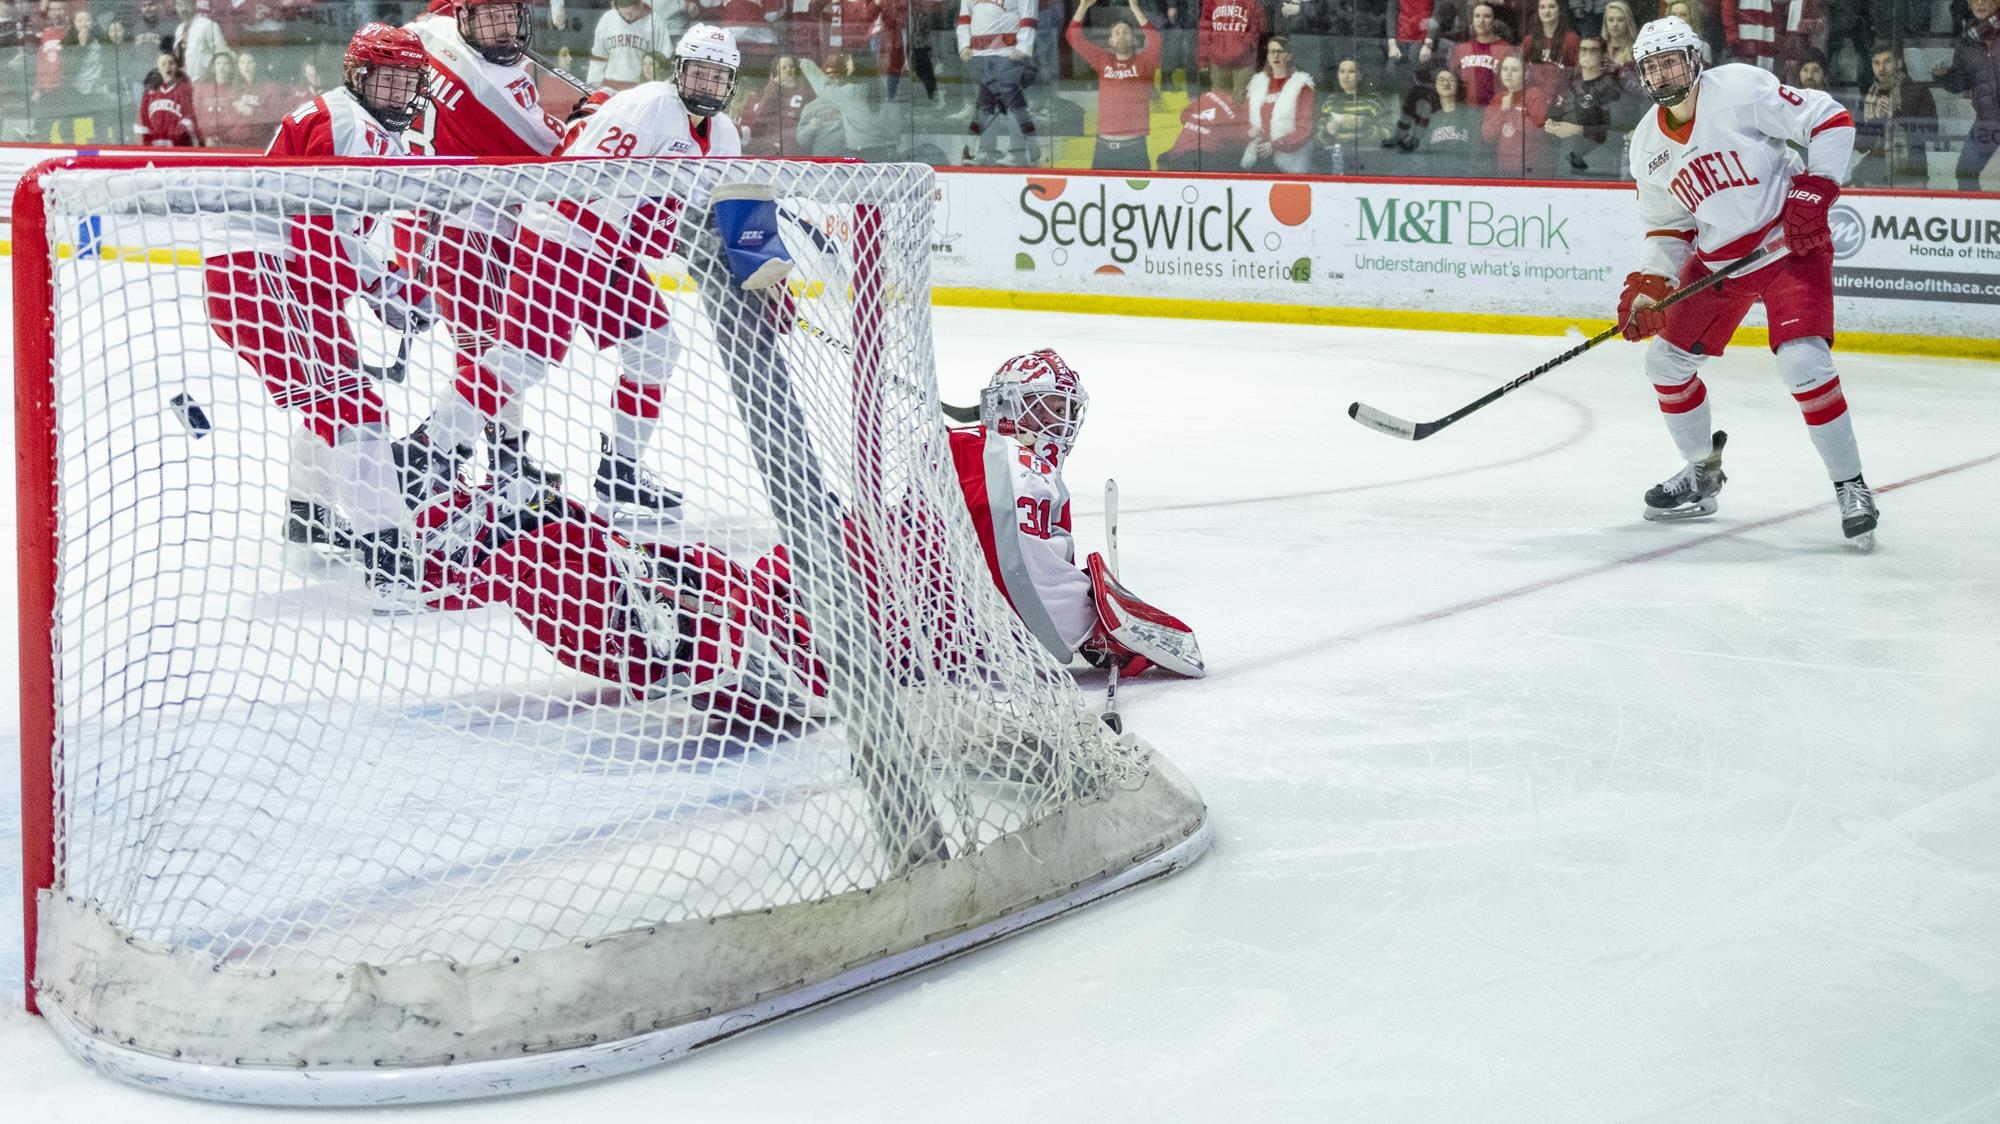 Alex Green watches his seventh goal of the season hit the net during the Cornell men's hockey team's ECAC Hockey game against Rensselaer on Feb. 15, 2020 at Lynah Rink in Ithaca, N.Y. (Eldon Lindsay/Cornell Athletics)